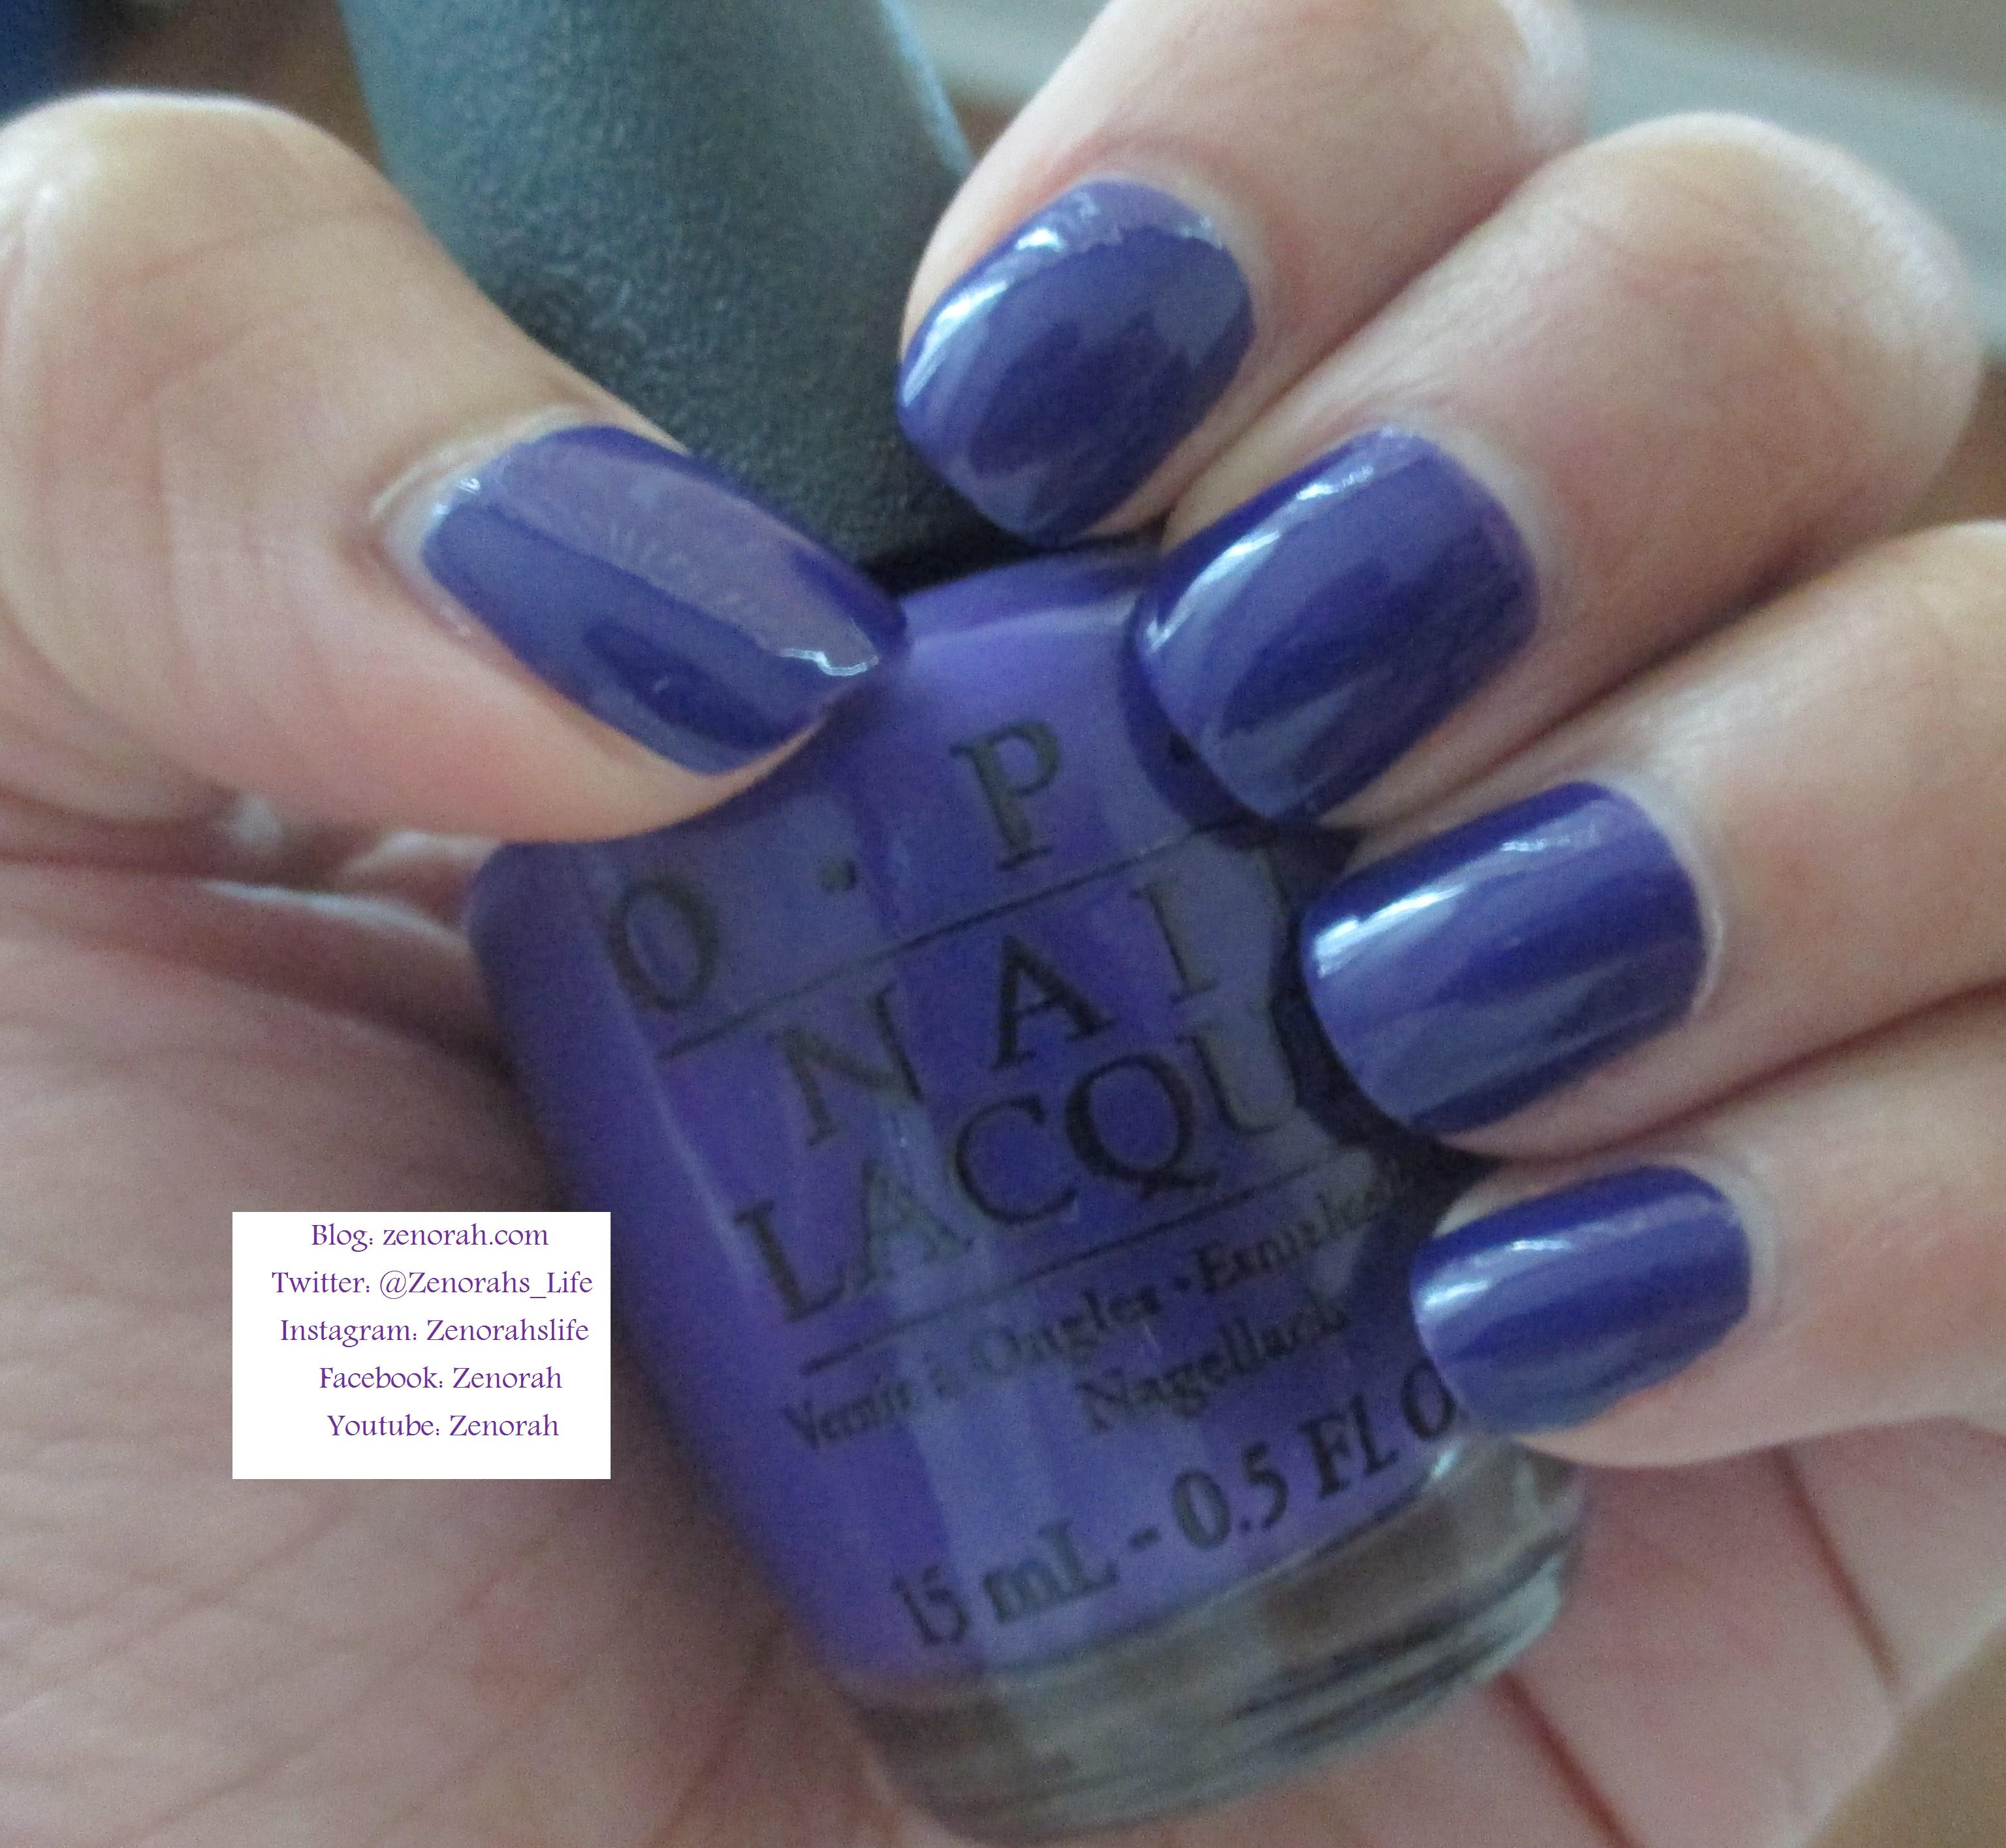 OPI \'Do you have this color in Stockholm?\' – Zenorah